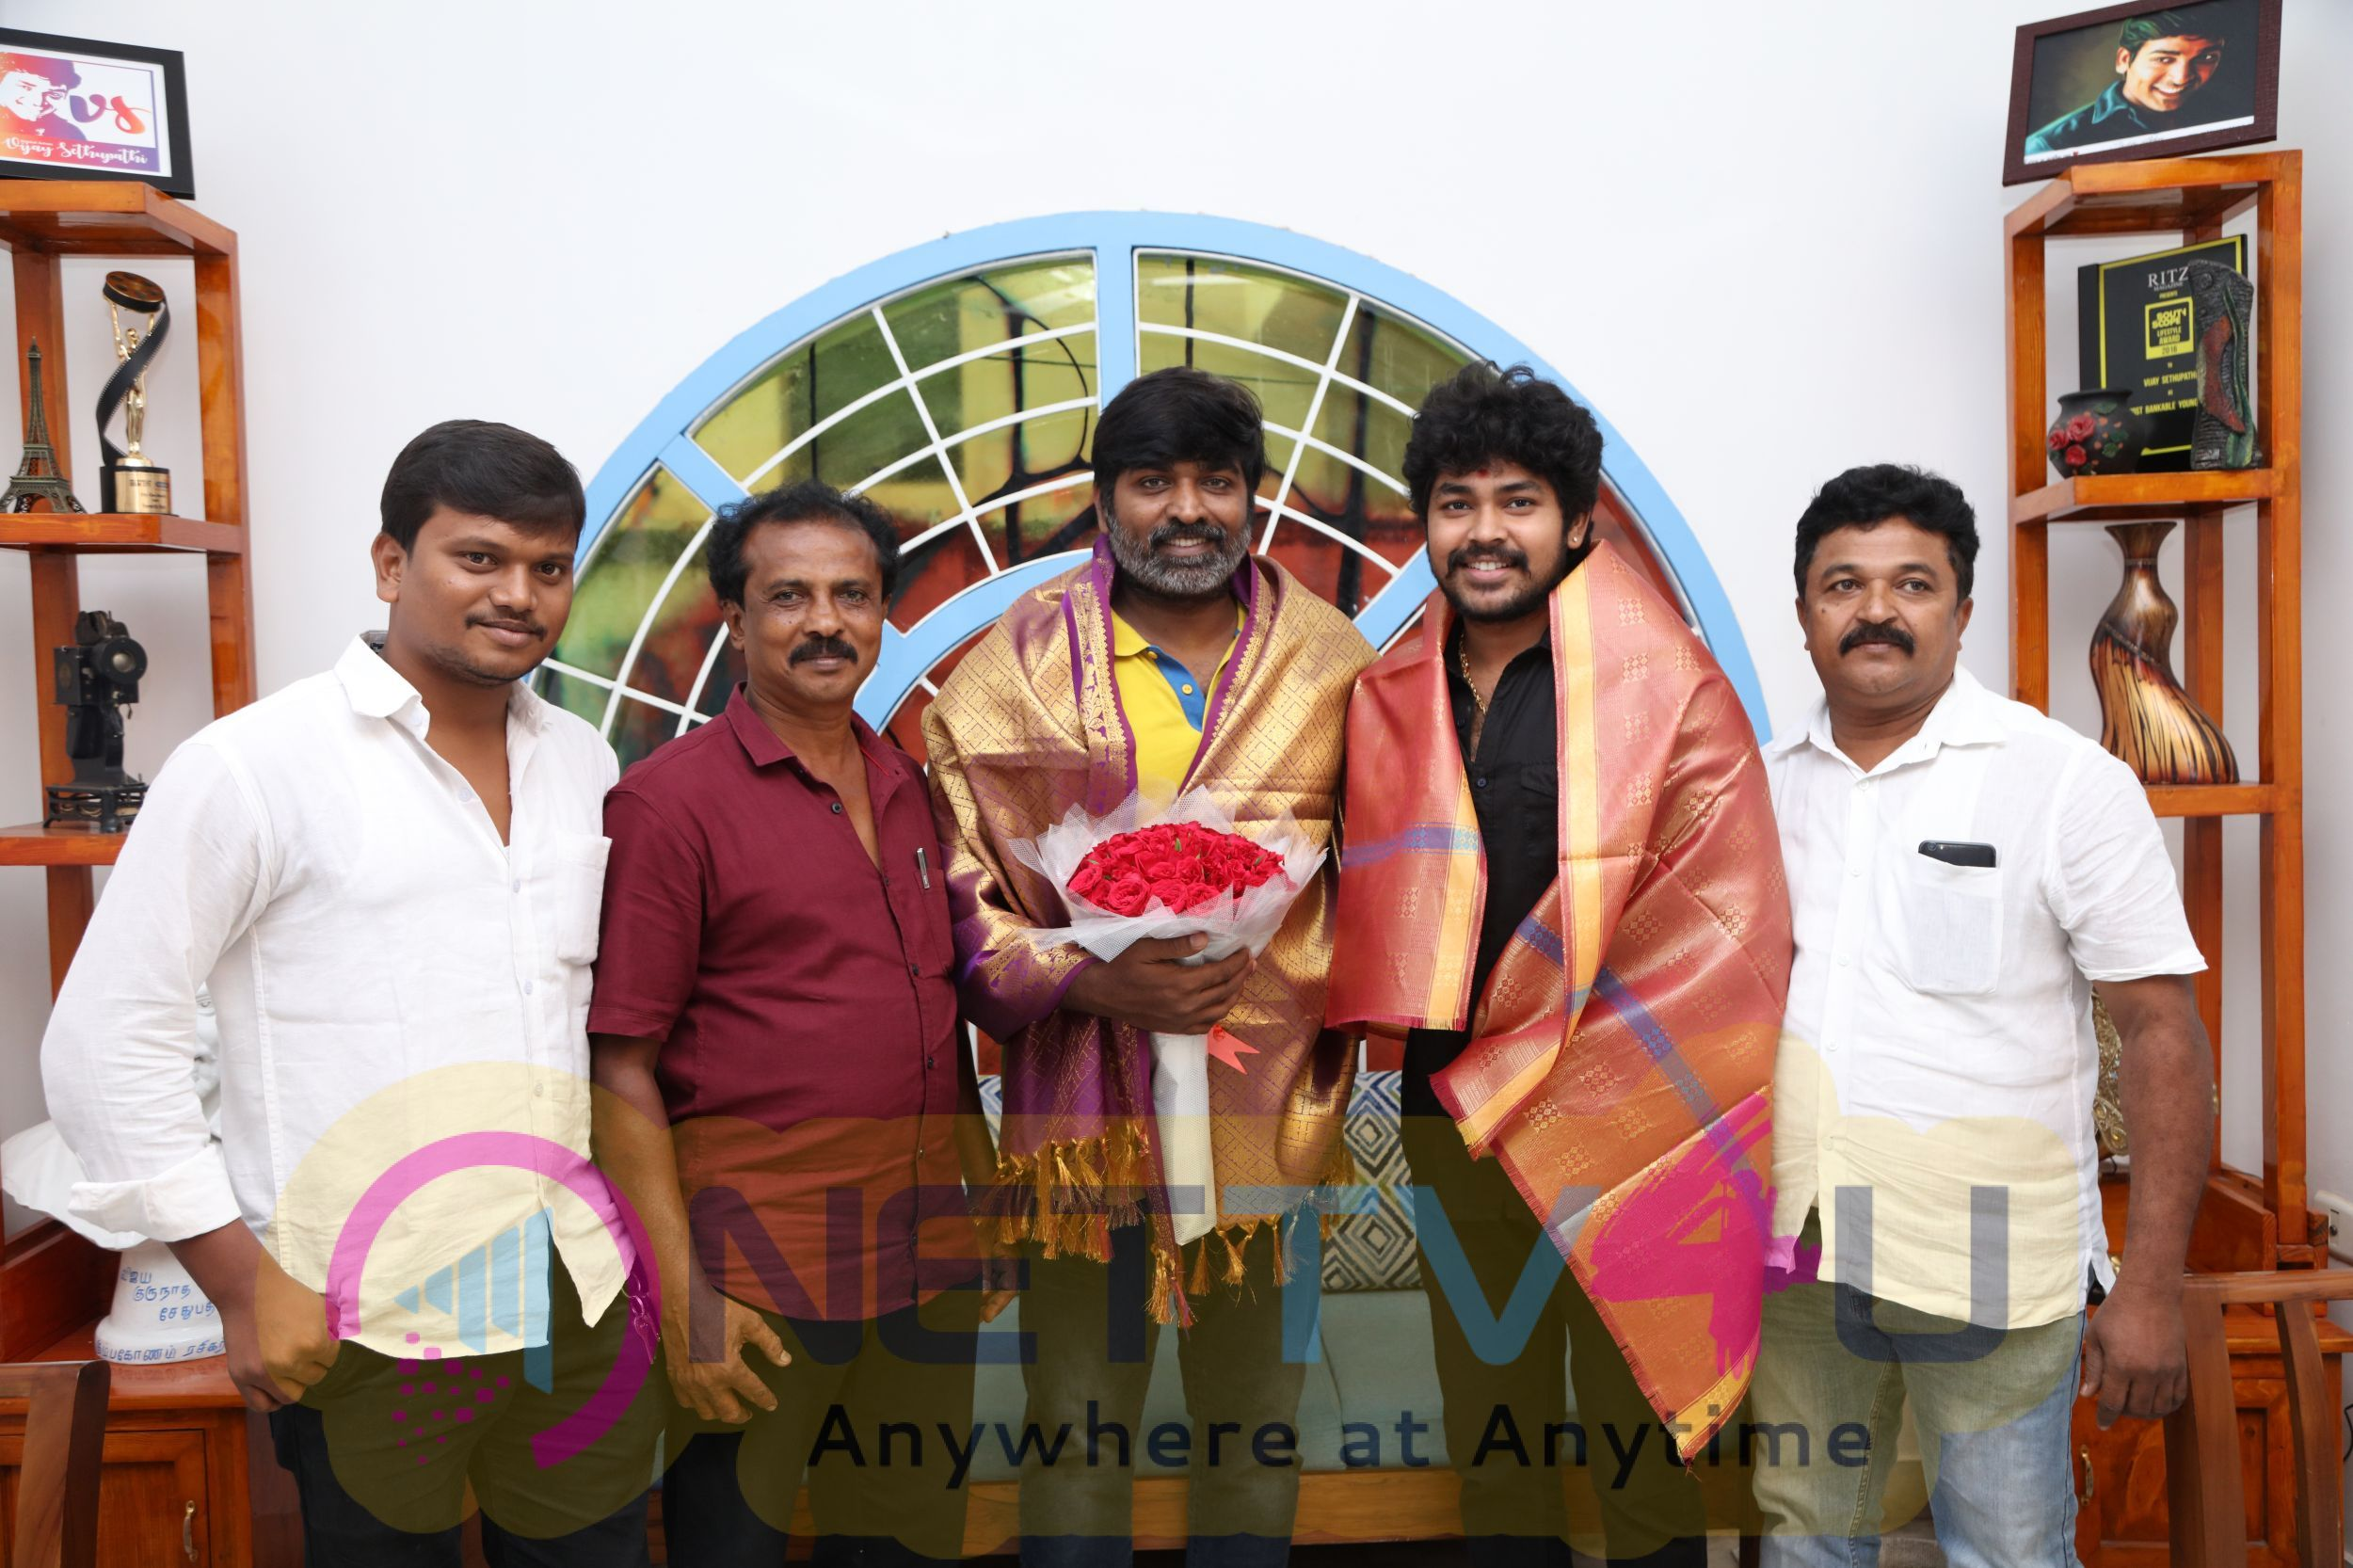 Makkal Selvan Vijay Sethupathi Released The First Look Poster Of Movie Alti Pics Tamil Gallery